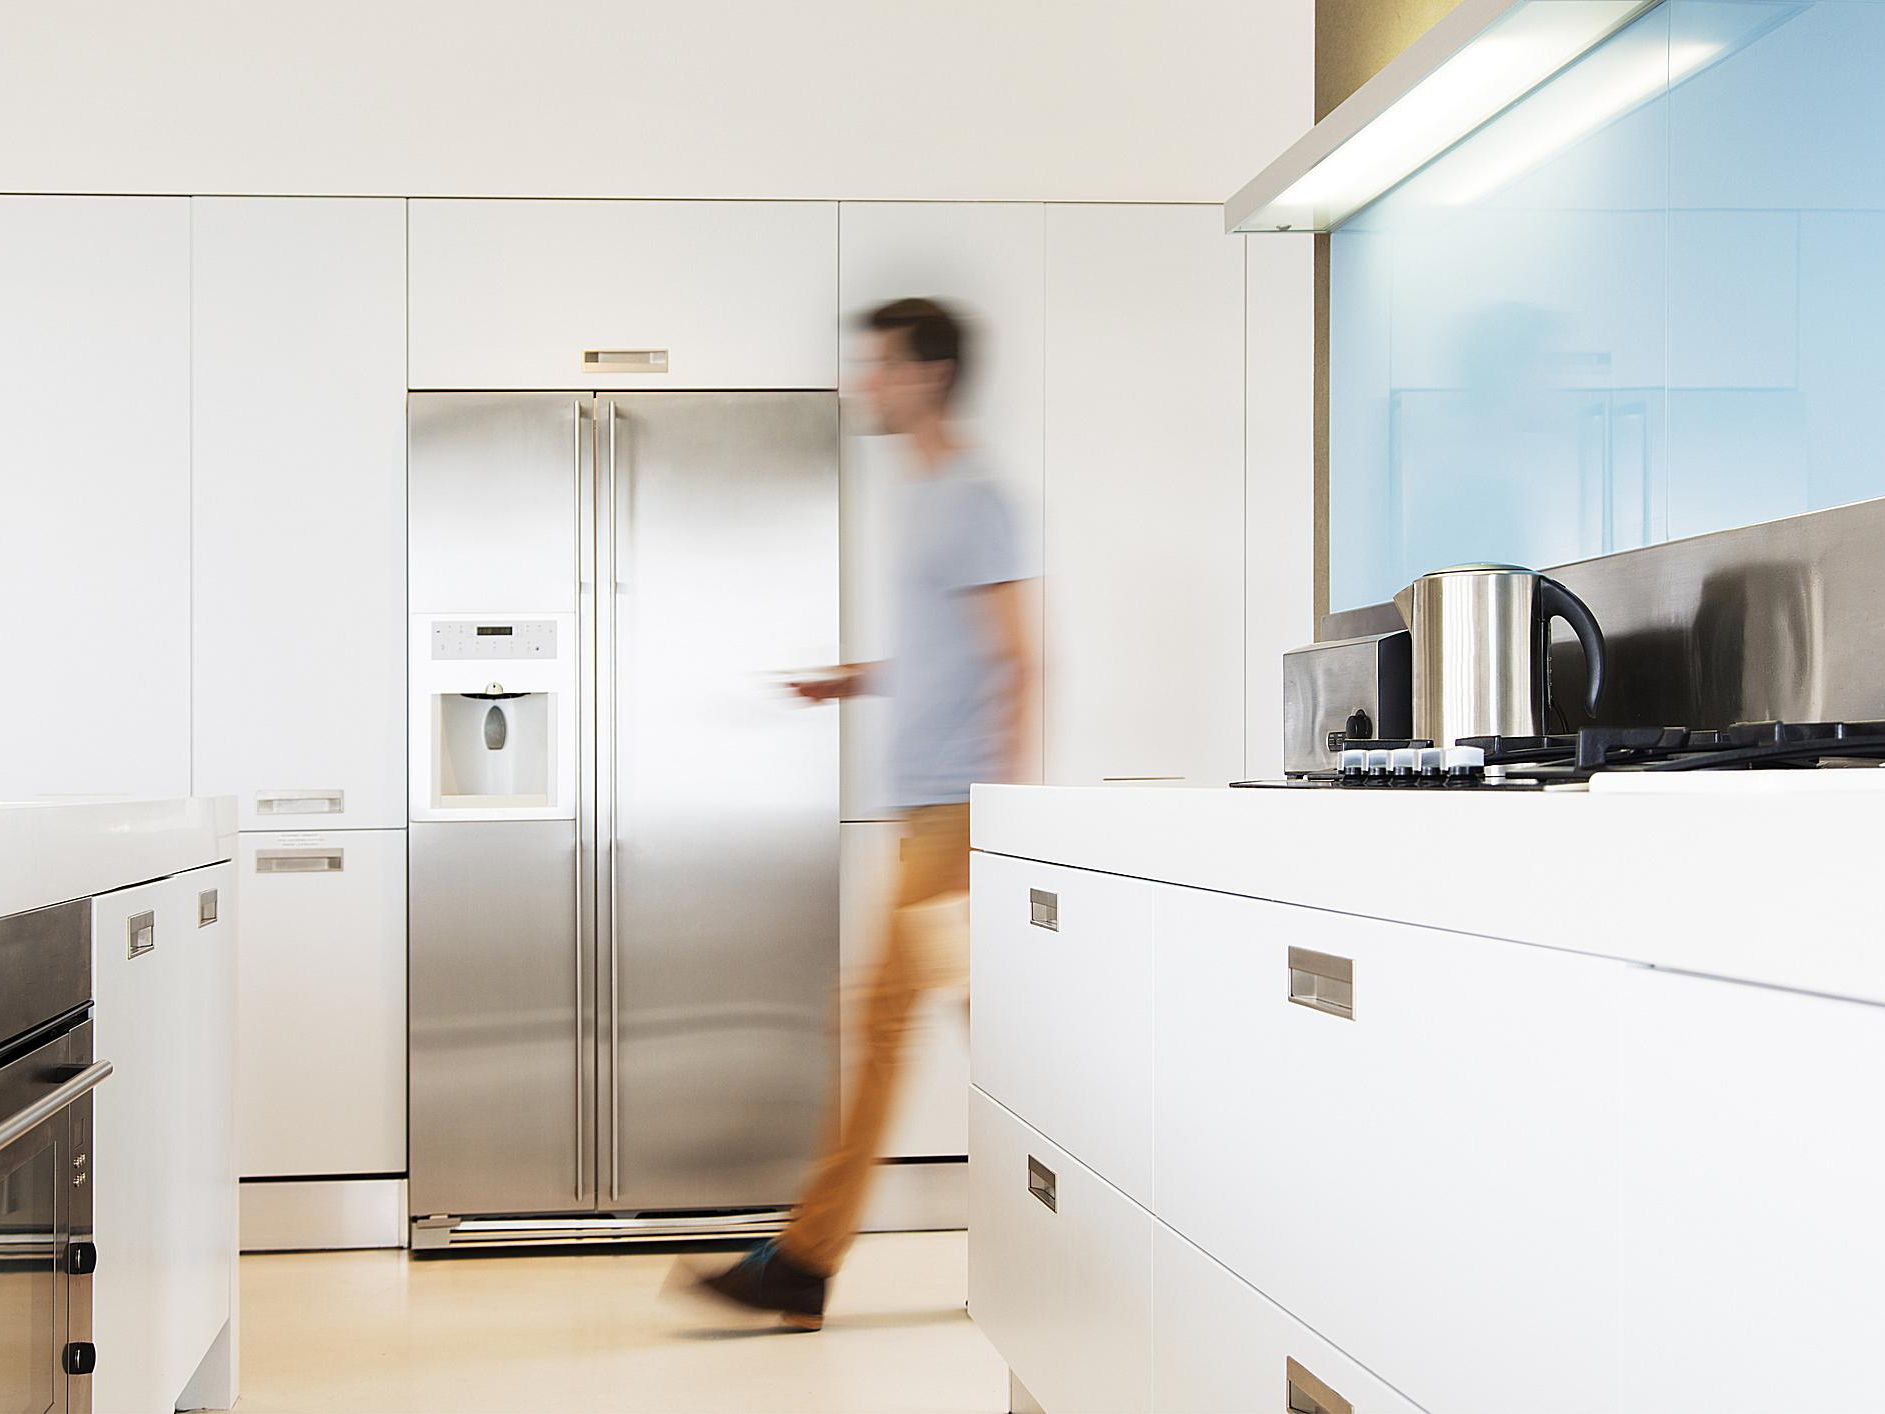 The Pros And Cons Of A Counter Depth Refrigerator